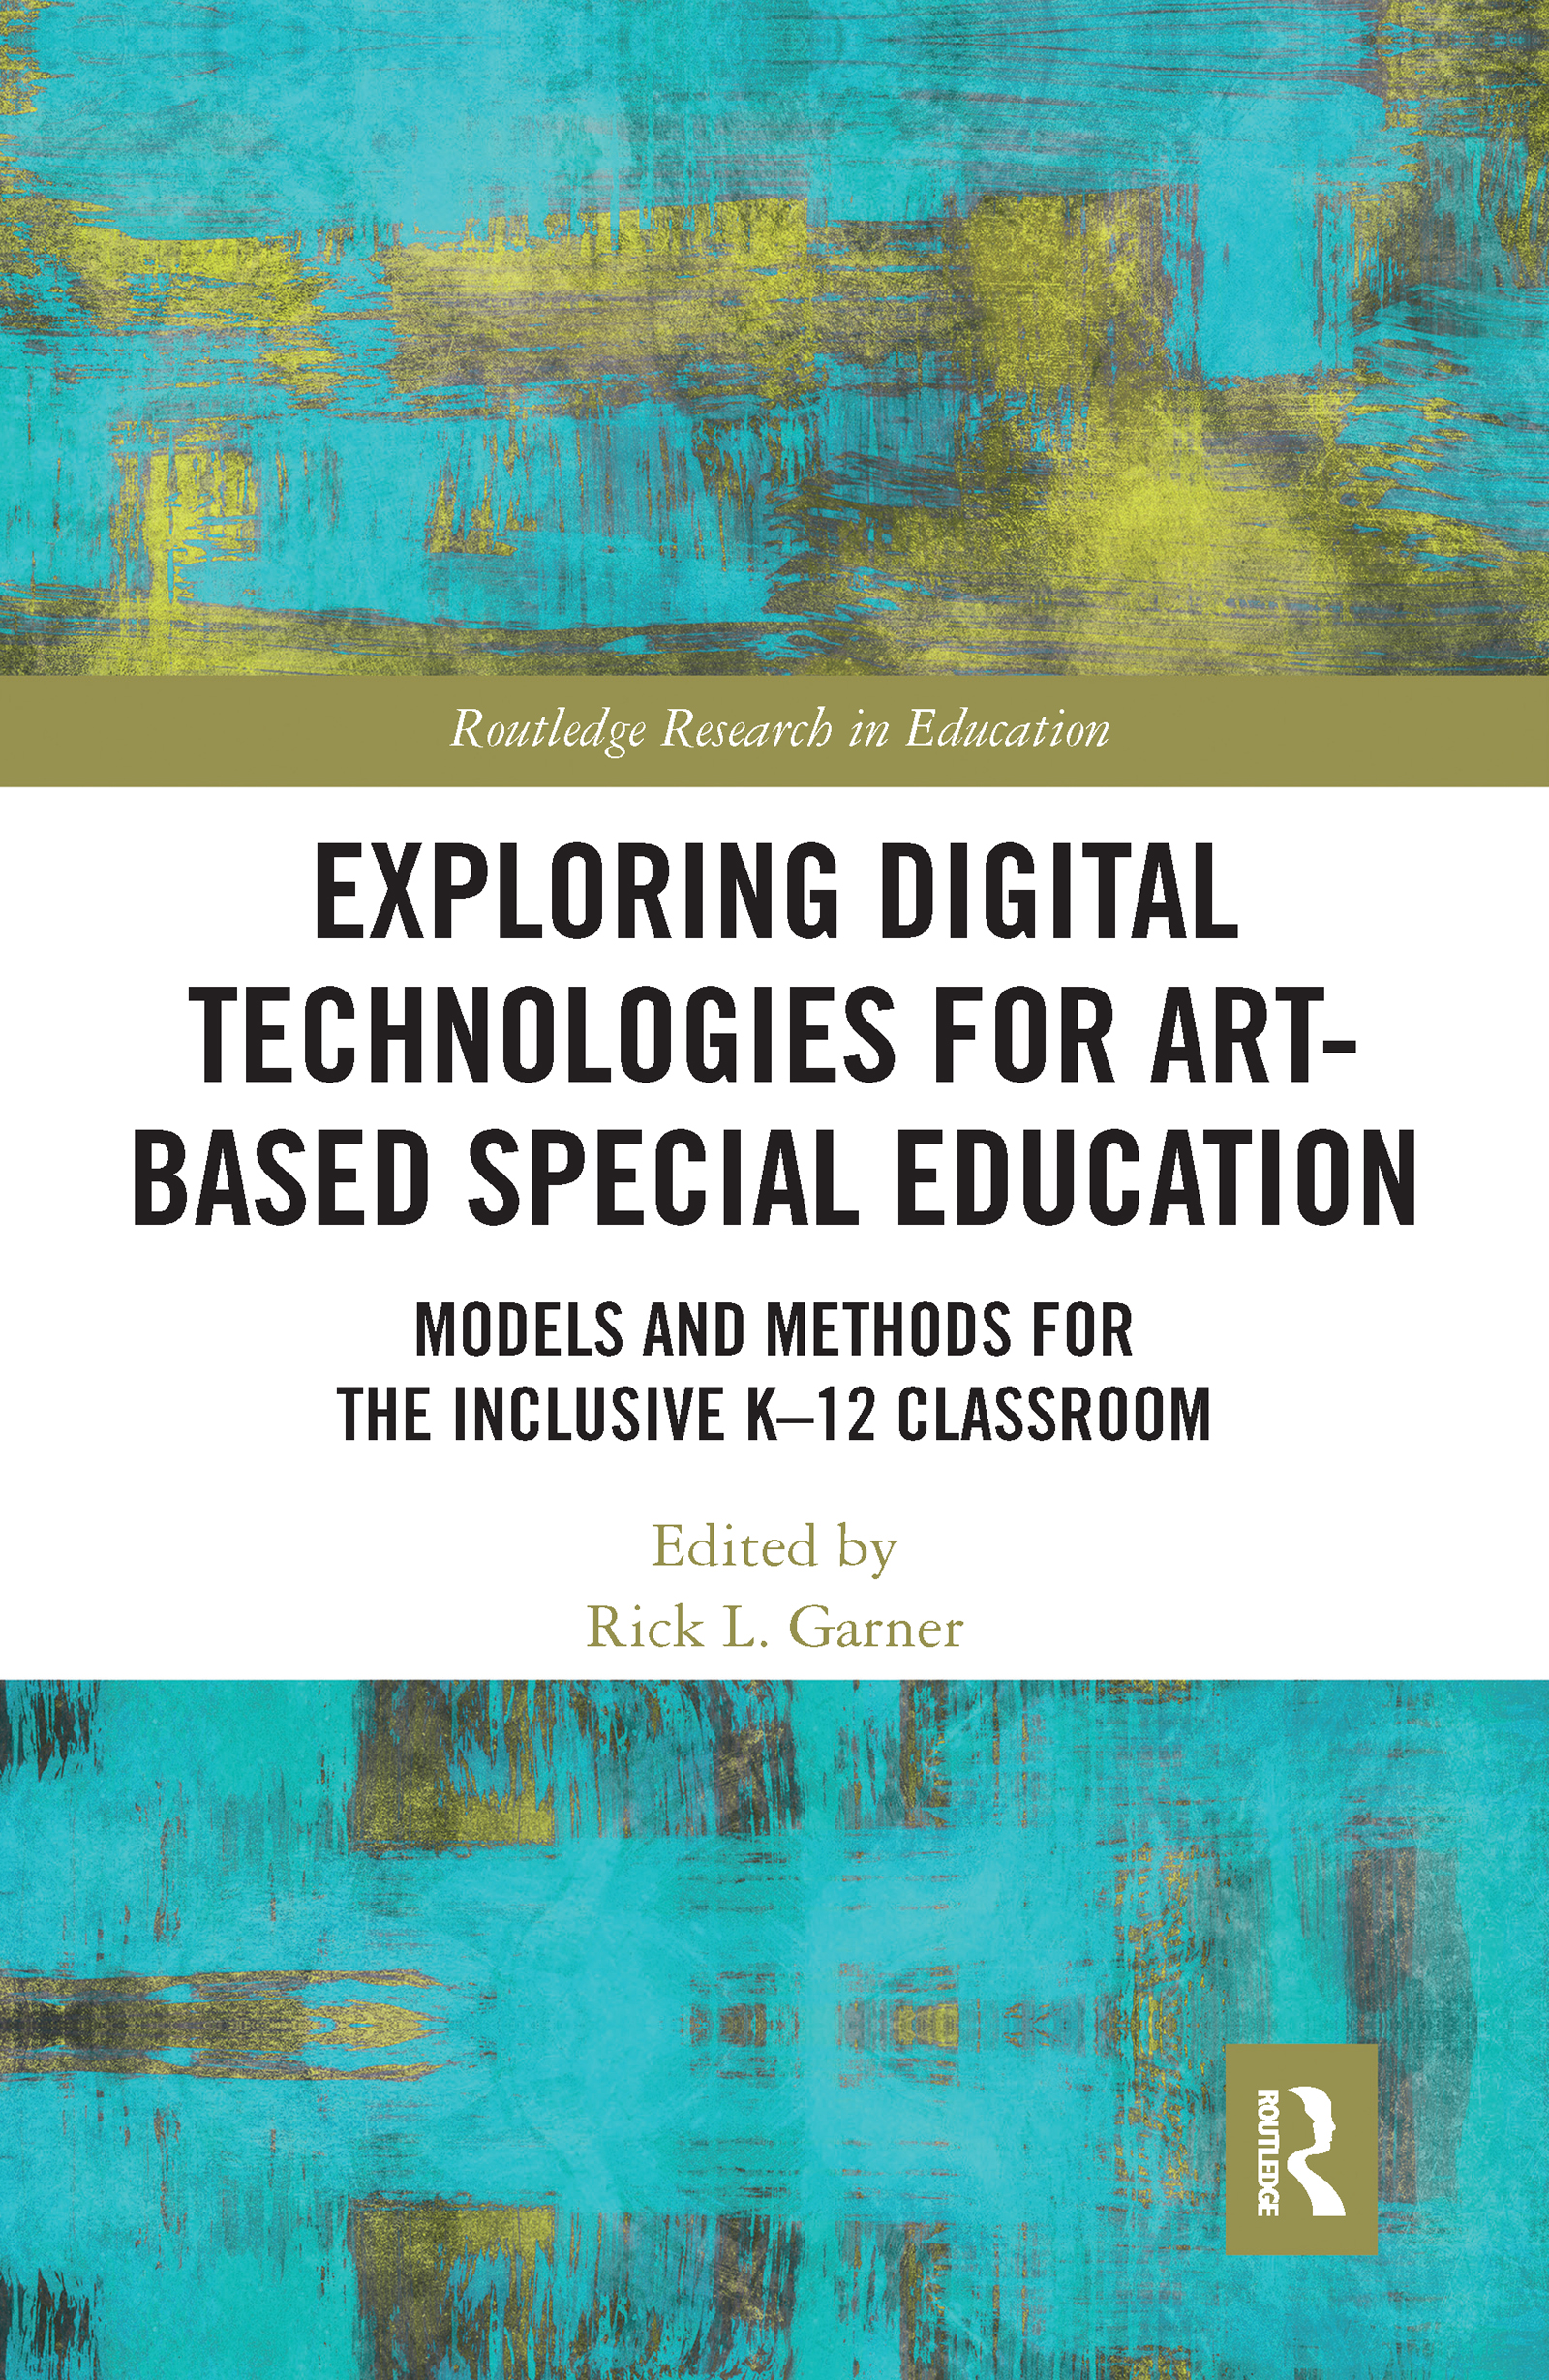 Exploring Digital Technologies for Art-Based Special Education